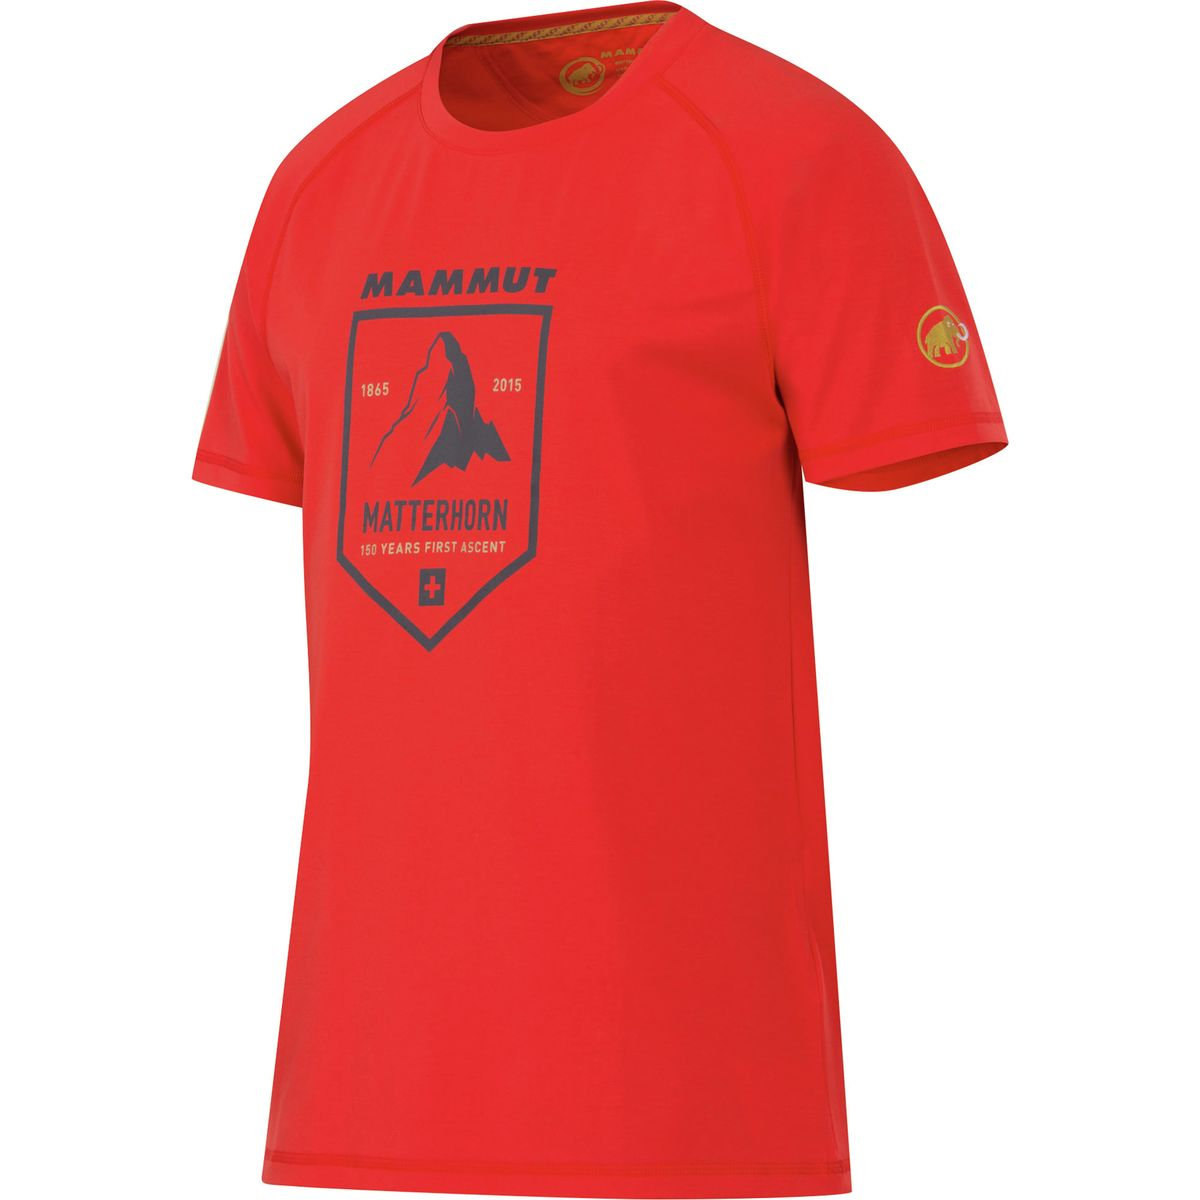 Mammut 150 Years T-Shirt